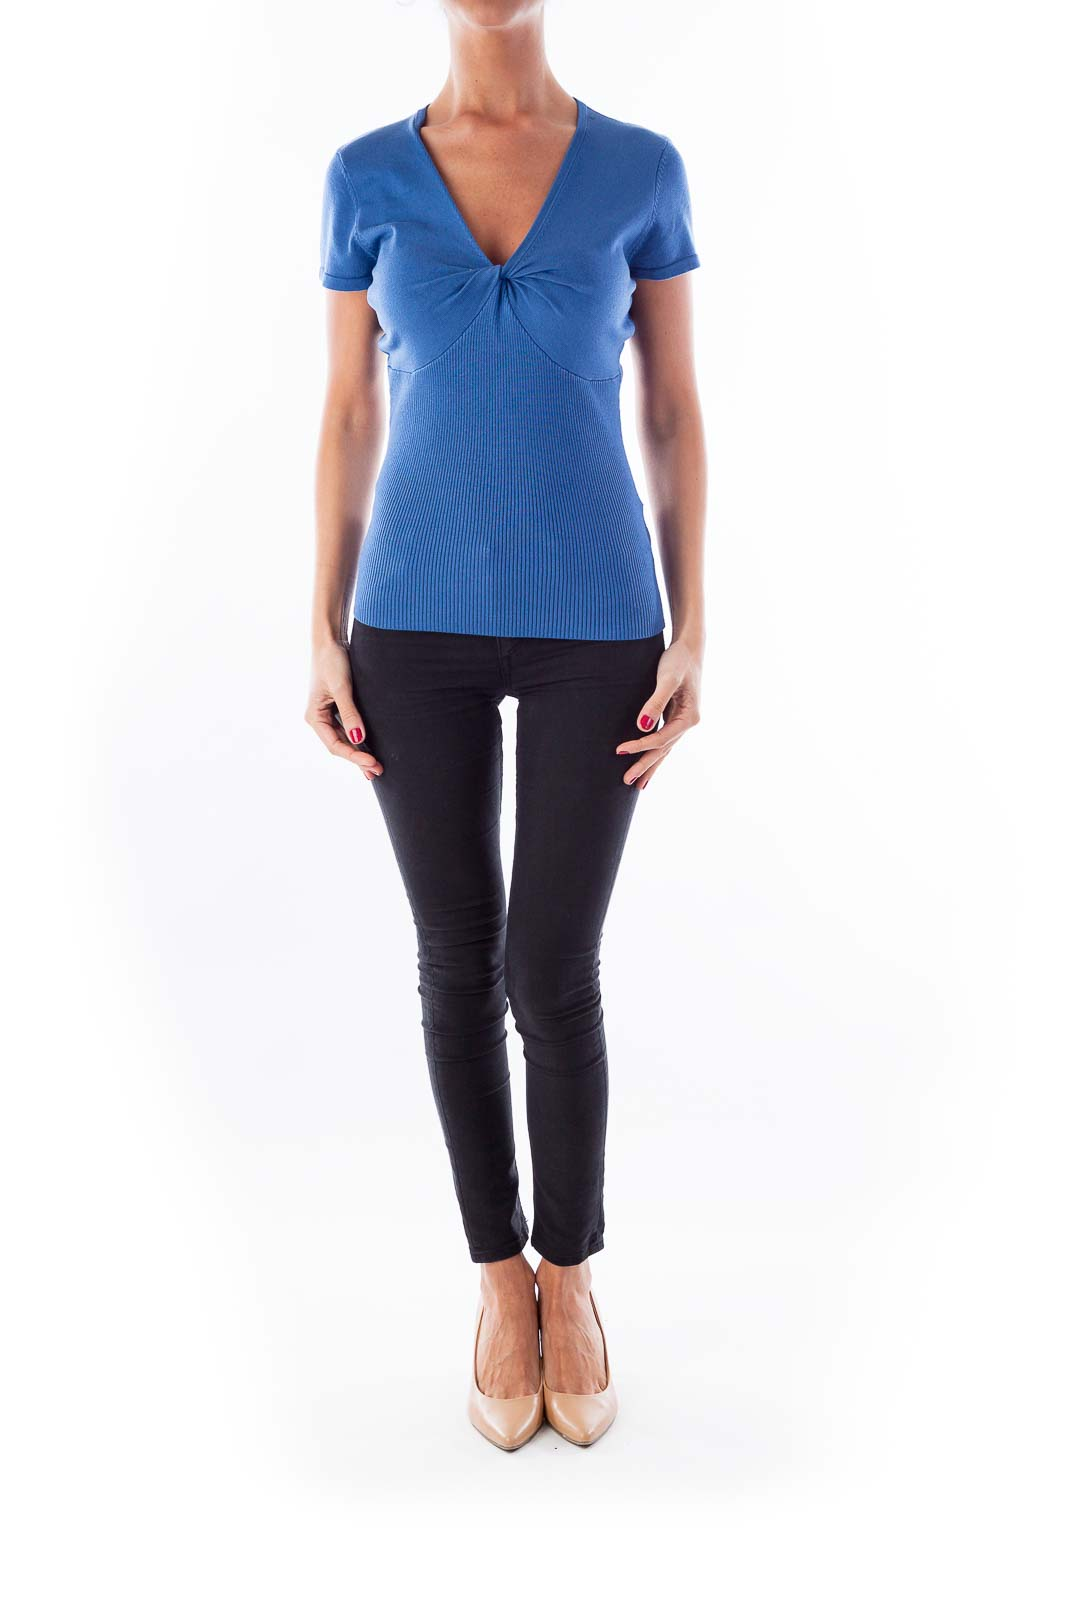 Blue Fitted Knit Top